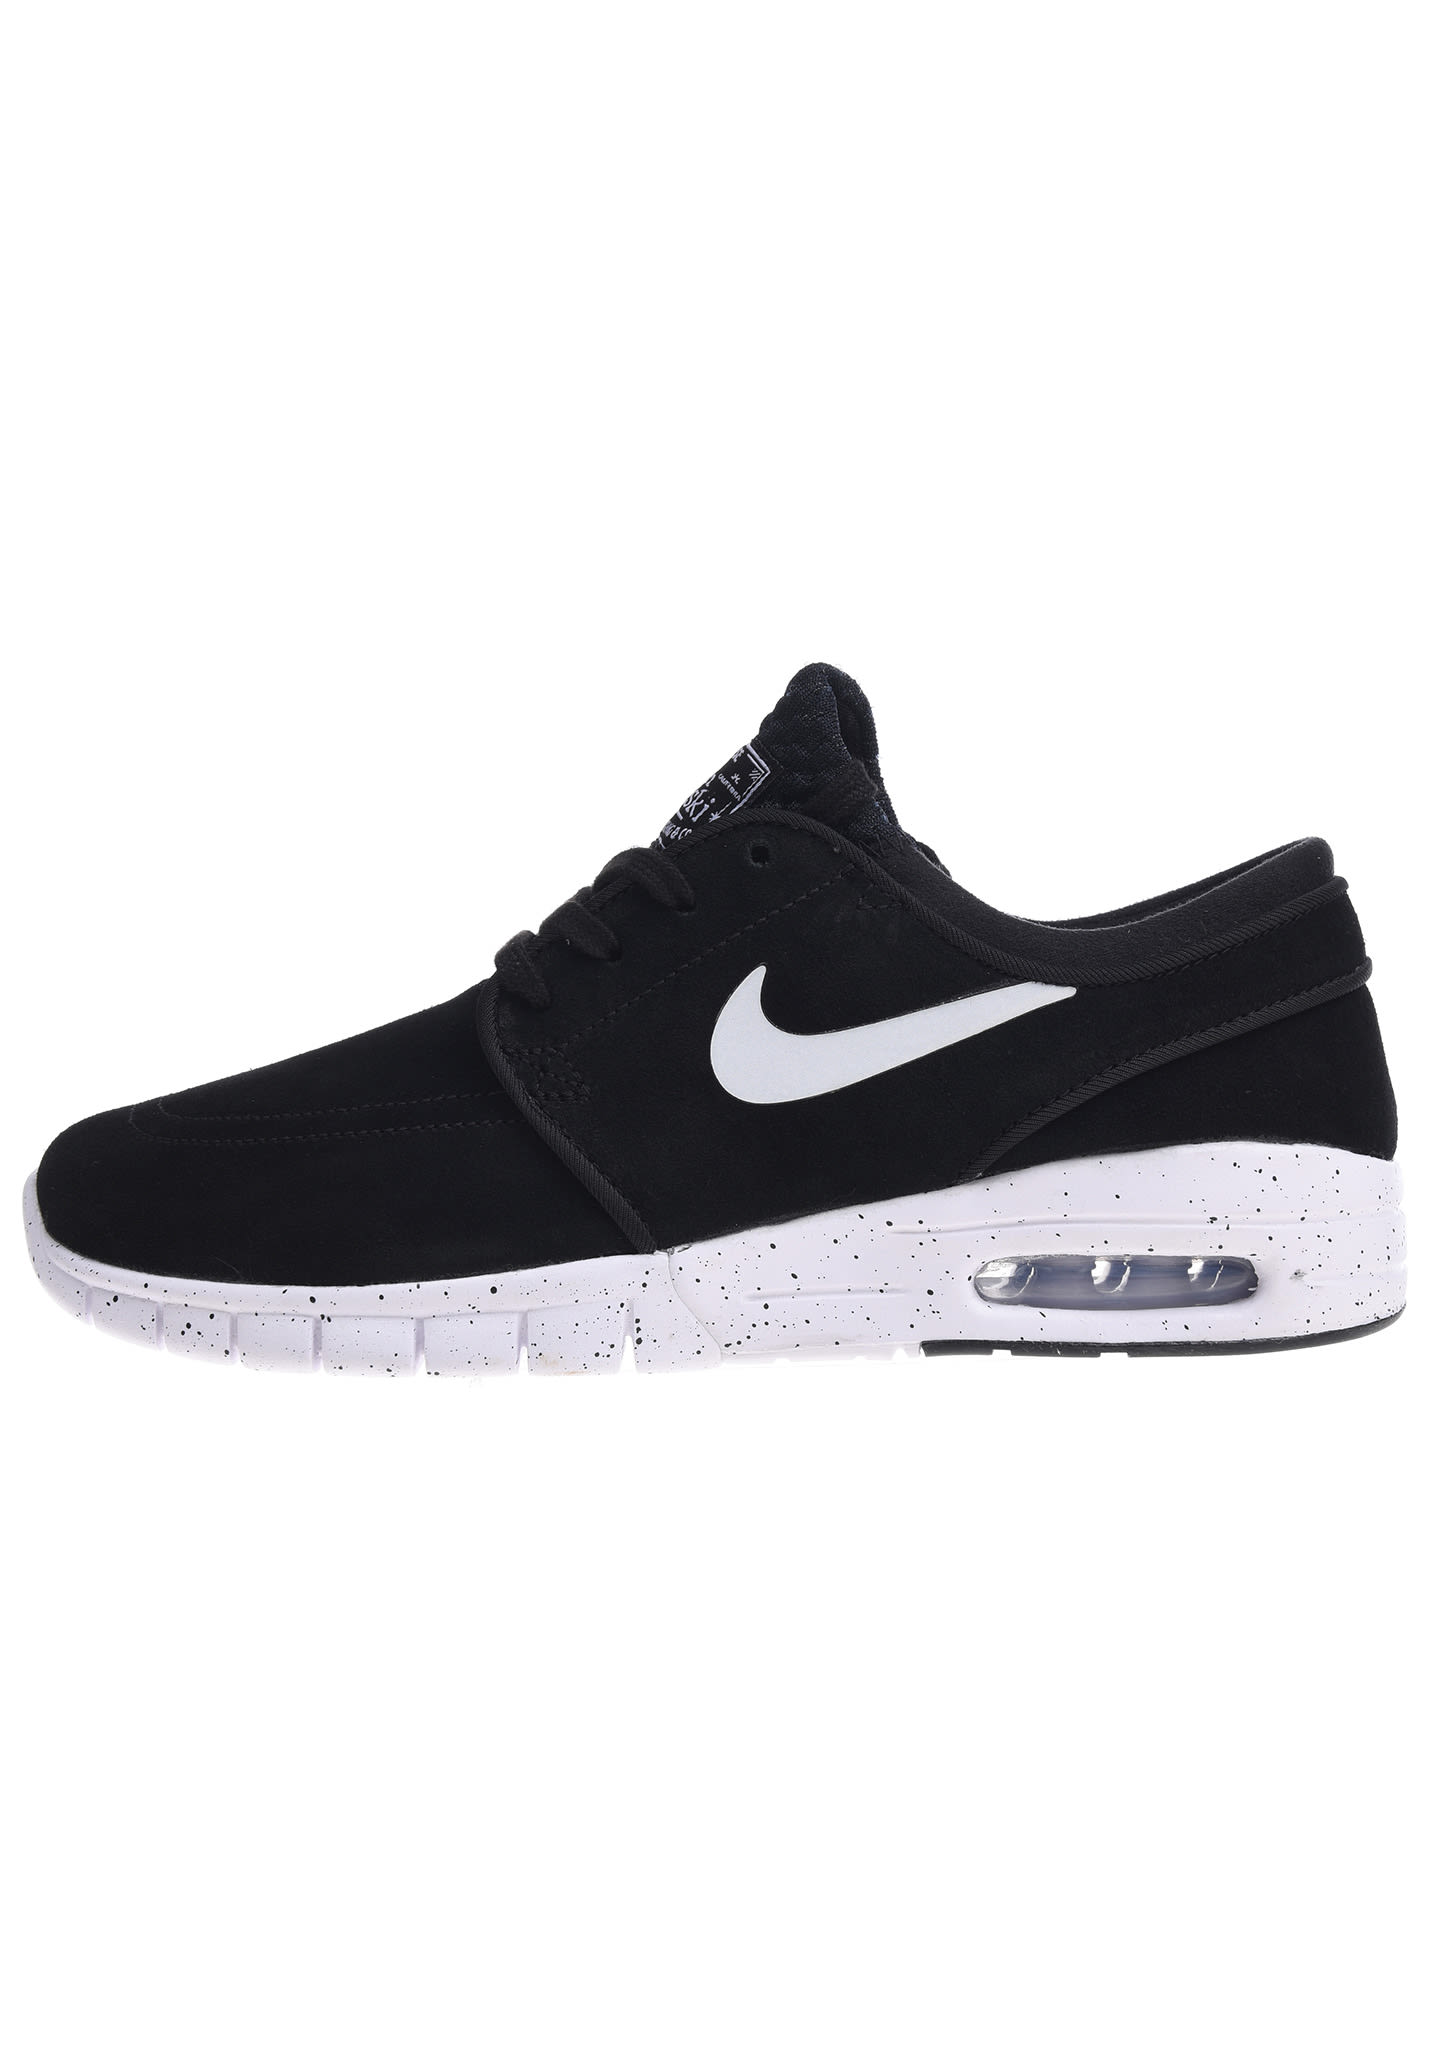 Nike Janoski Max Leather